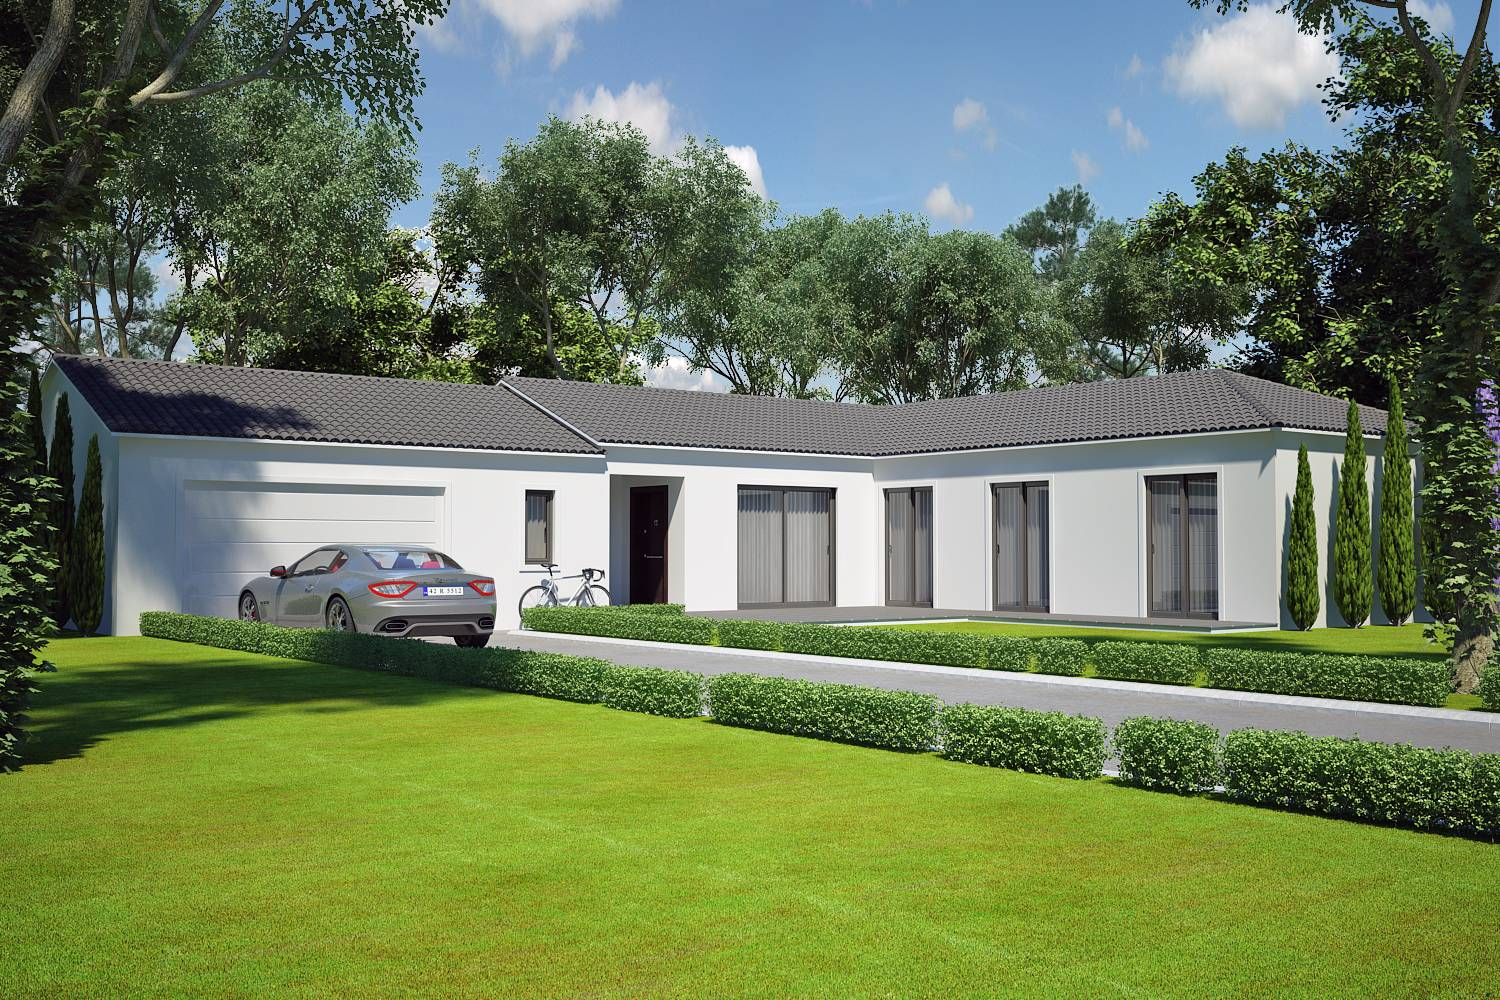 Villa contemporaine 110 m2 plain pied mod le saphir for Maison 120m2 plain pied